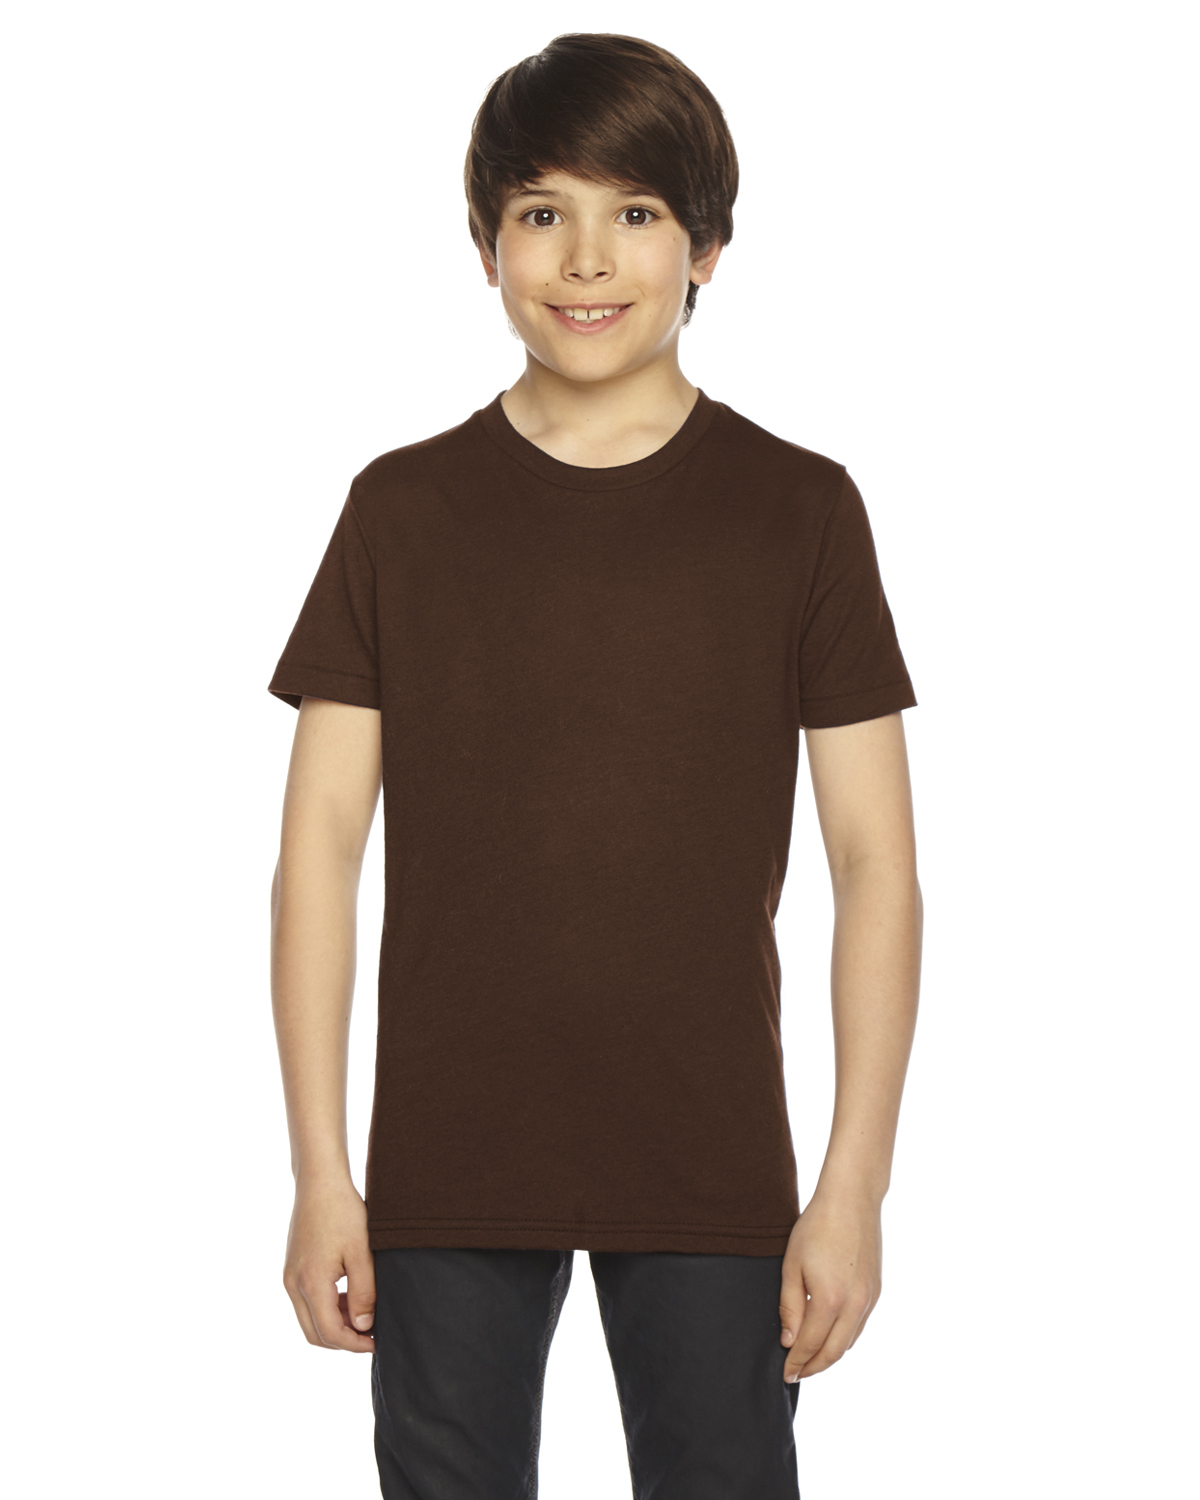 American Apparel Youth Poly-Cotton Short-Sleeve Crewneck